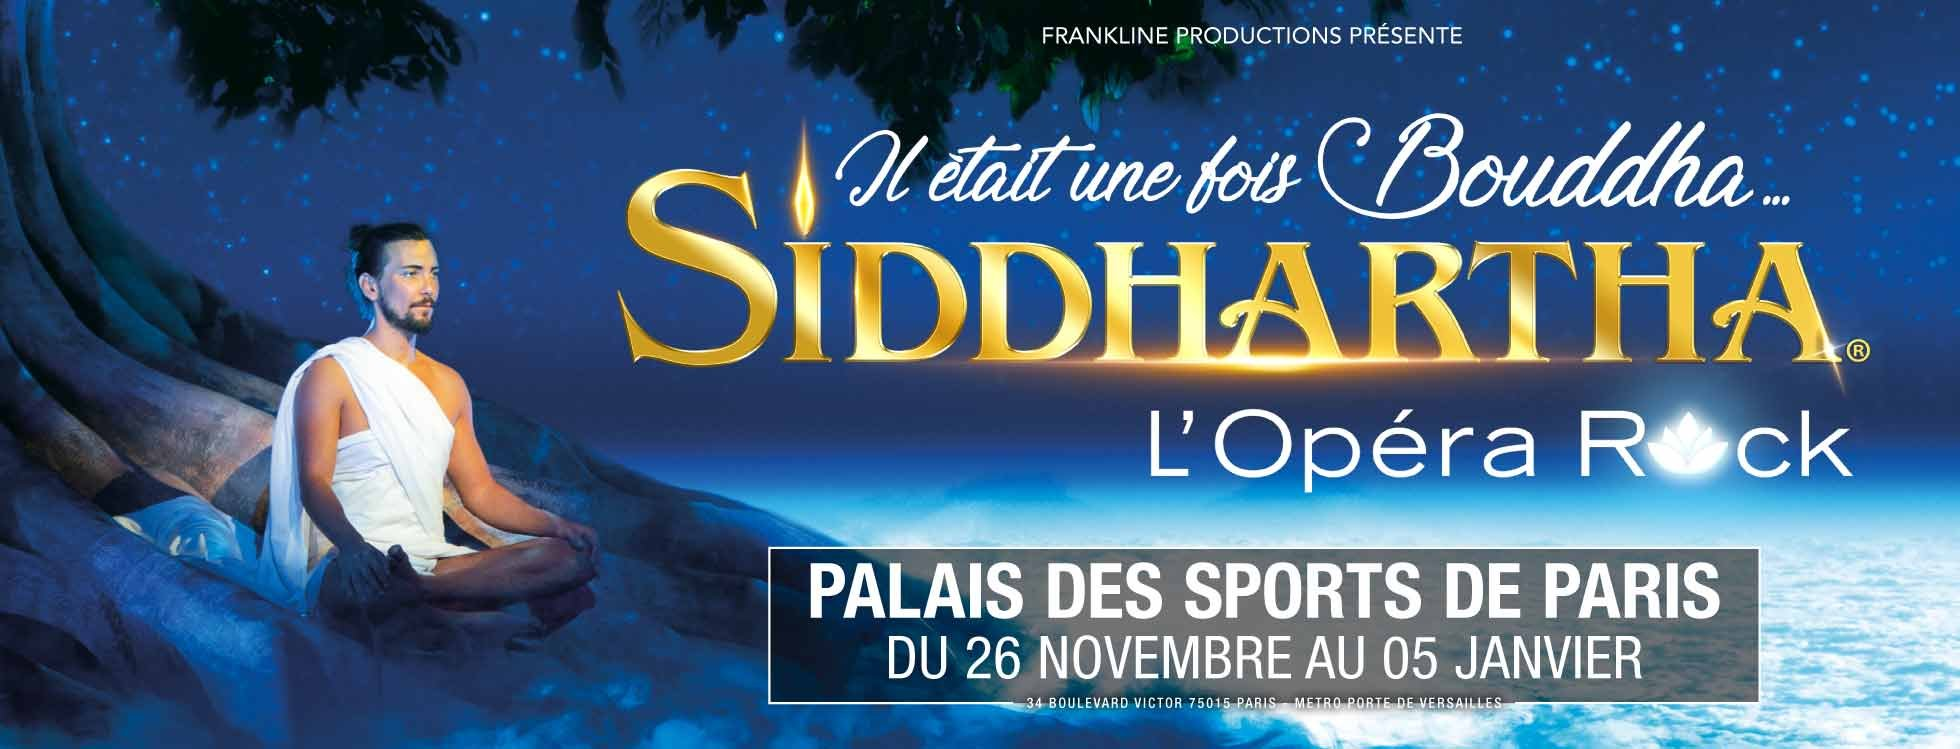 dome de paris : SIDDHARTHA l'Opéra Rock